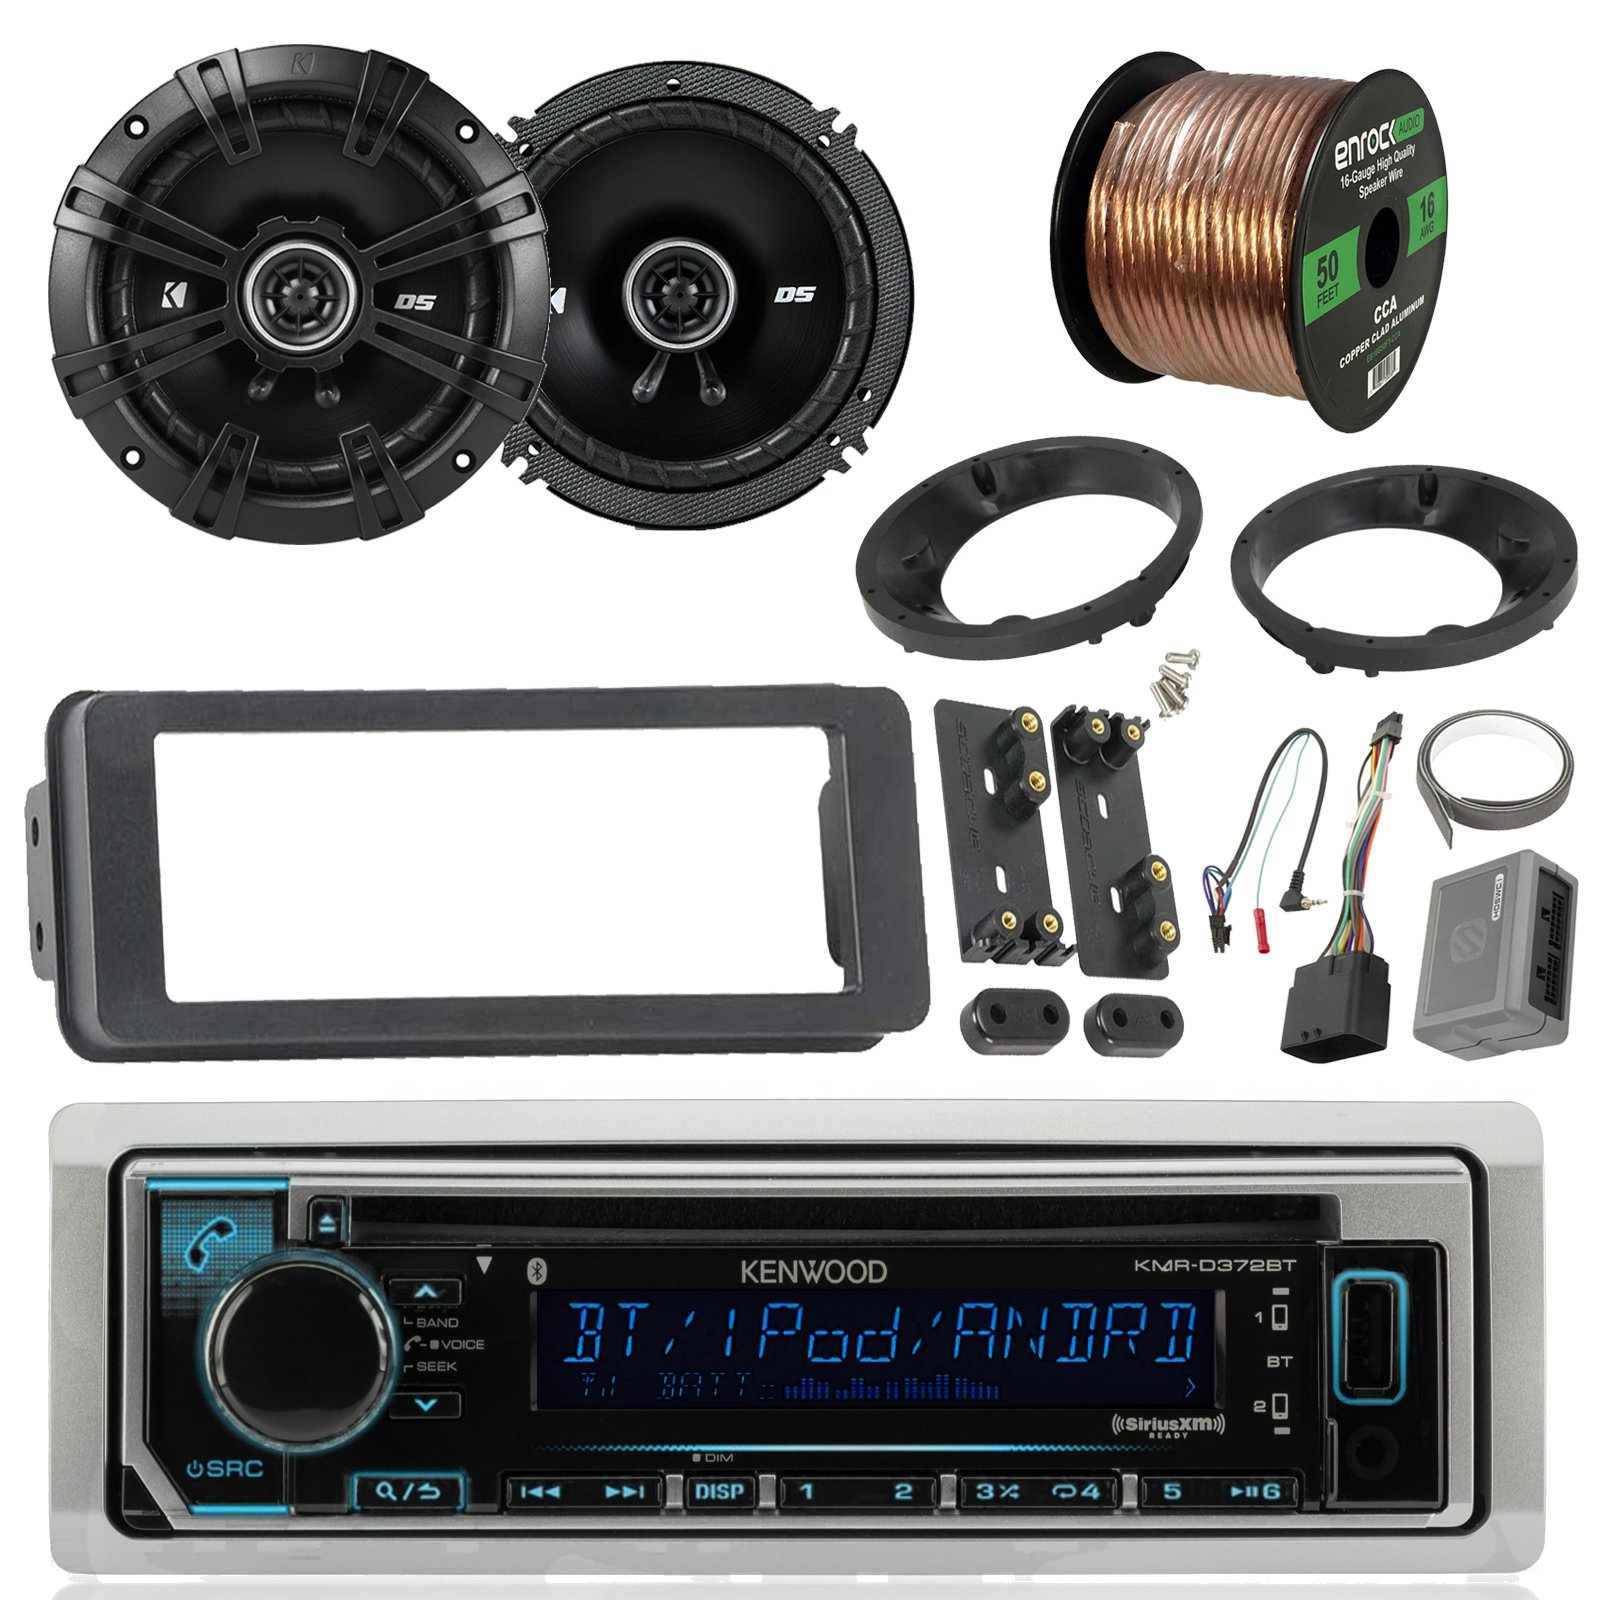 Kenwood KMRD365BT Marine Stereo Receiver Bundle Combo With 2x Kicker 6.5'' Speakers W/ Install brackets, Dash Kit + Handle Bar Control For 1998-2013 Harley Motorcycles + Enrock 50Ft 16g Speaker Wires by Enrock Motorcycle Bundle